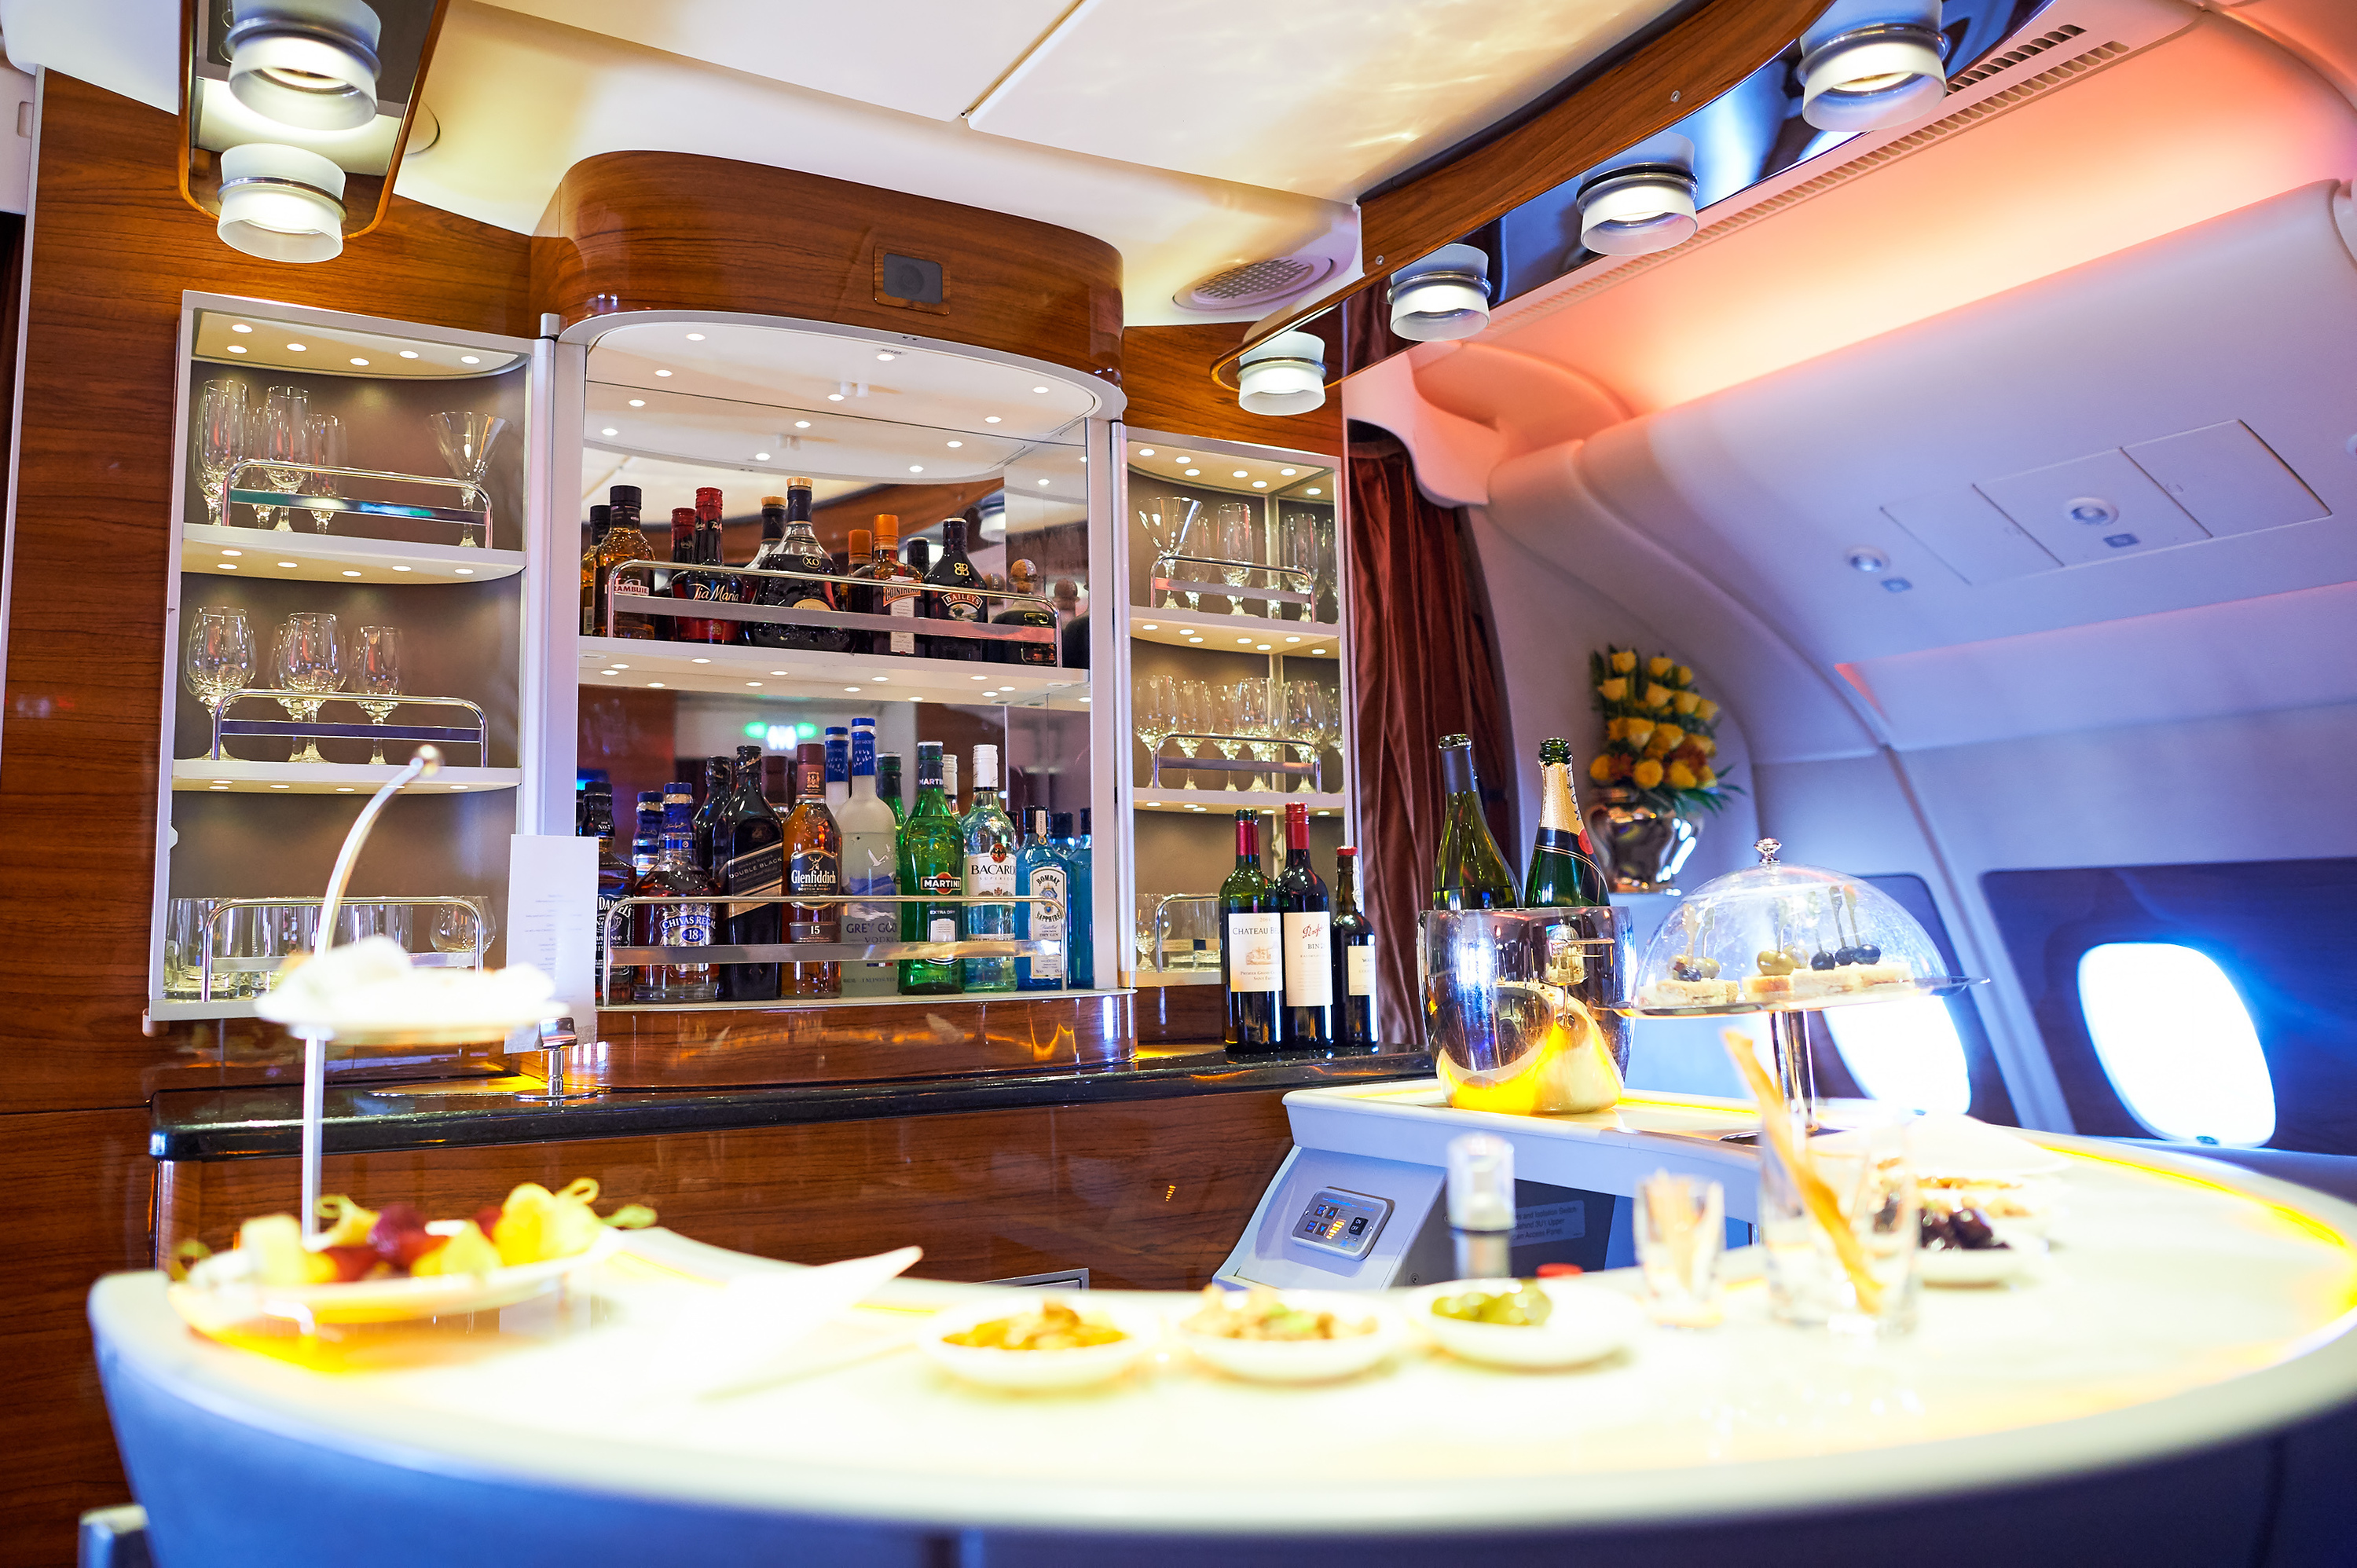 A 1950s airplane is turning into a vintage-style cocktail bar at JFK